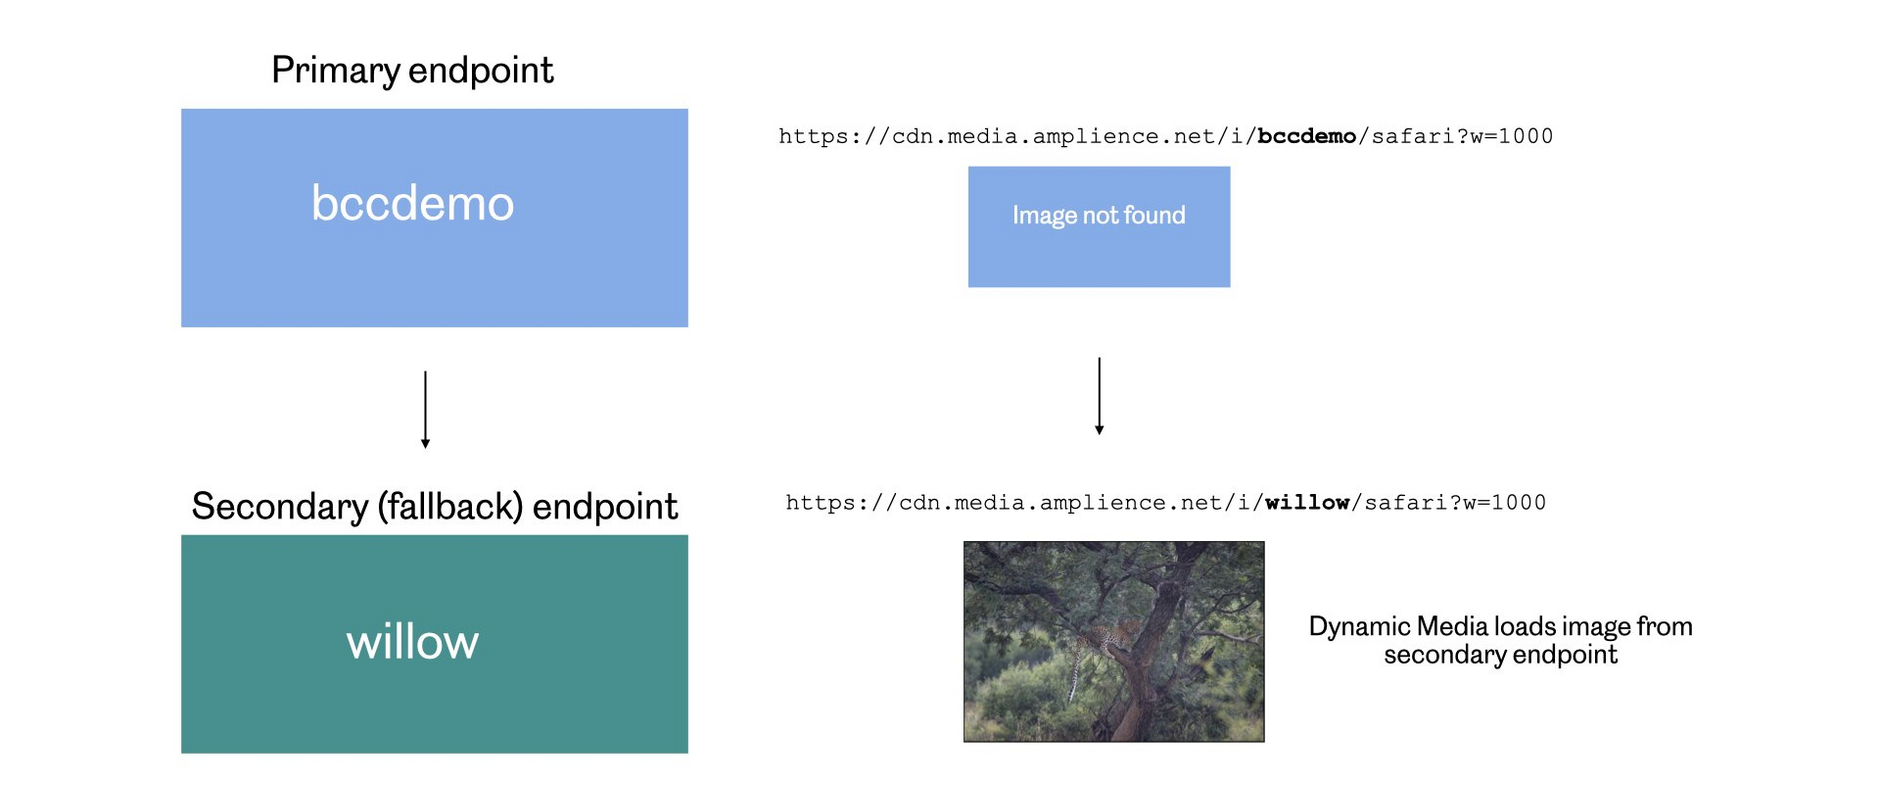 Willow is configured as the secondary endpoint for bccdemo